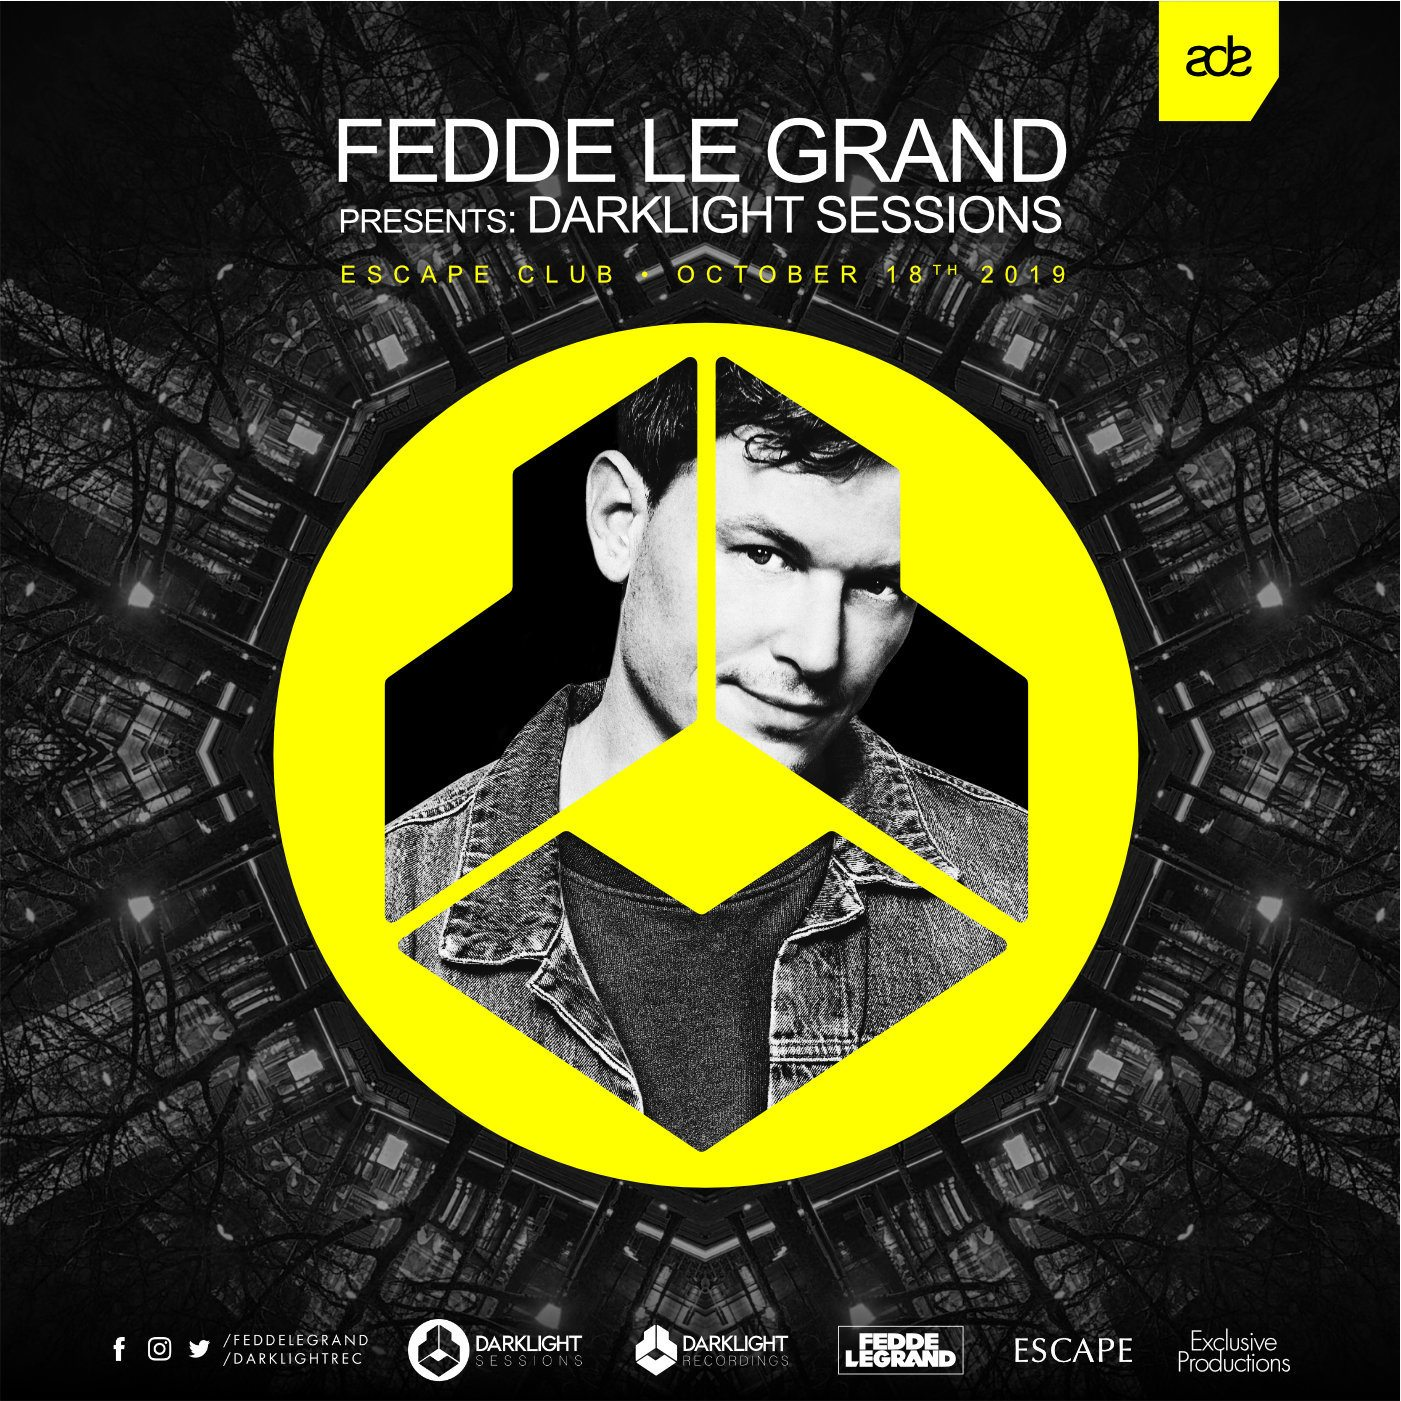 Fedde Le Grand Presents: Darklight Sessions at ADE